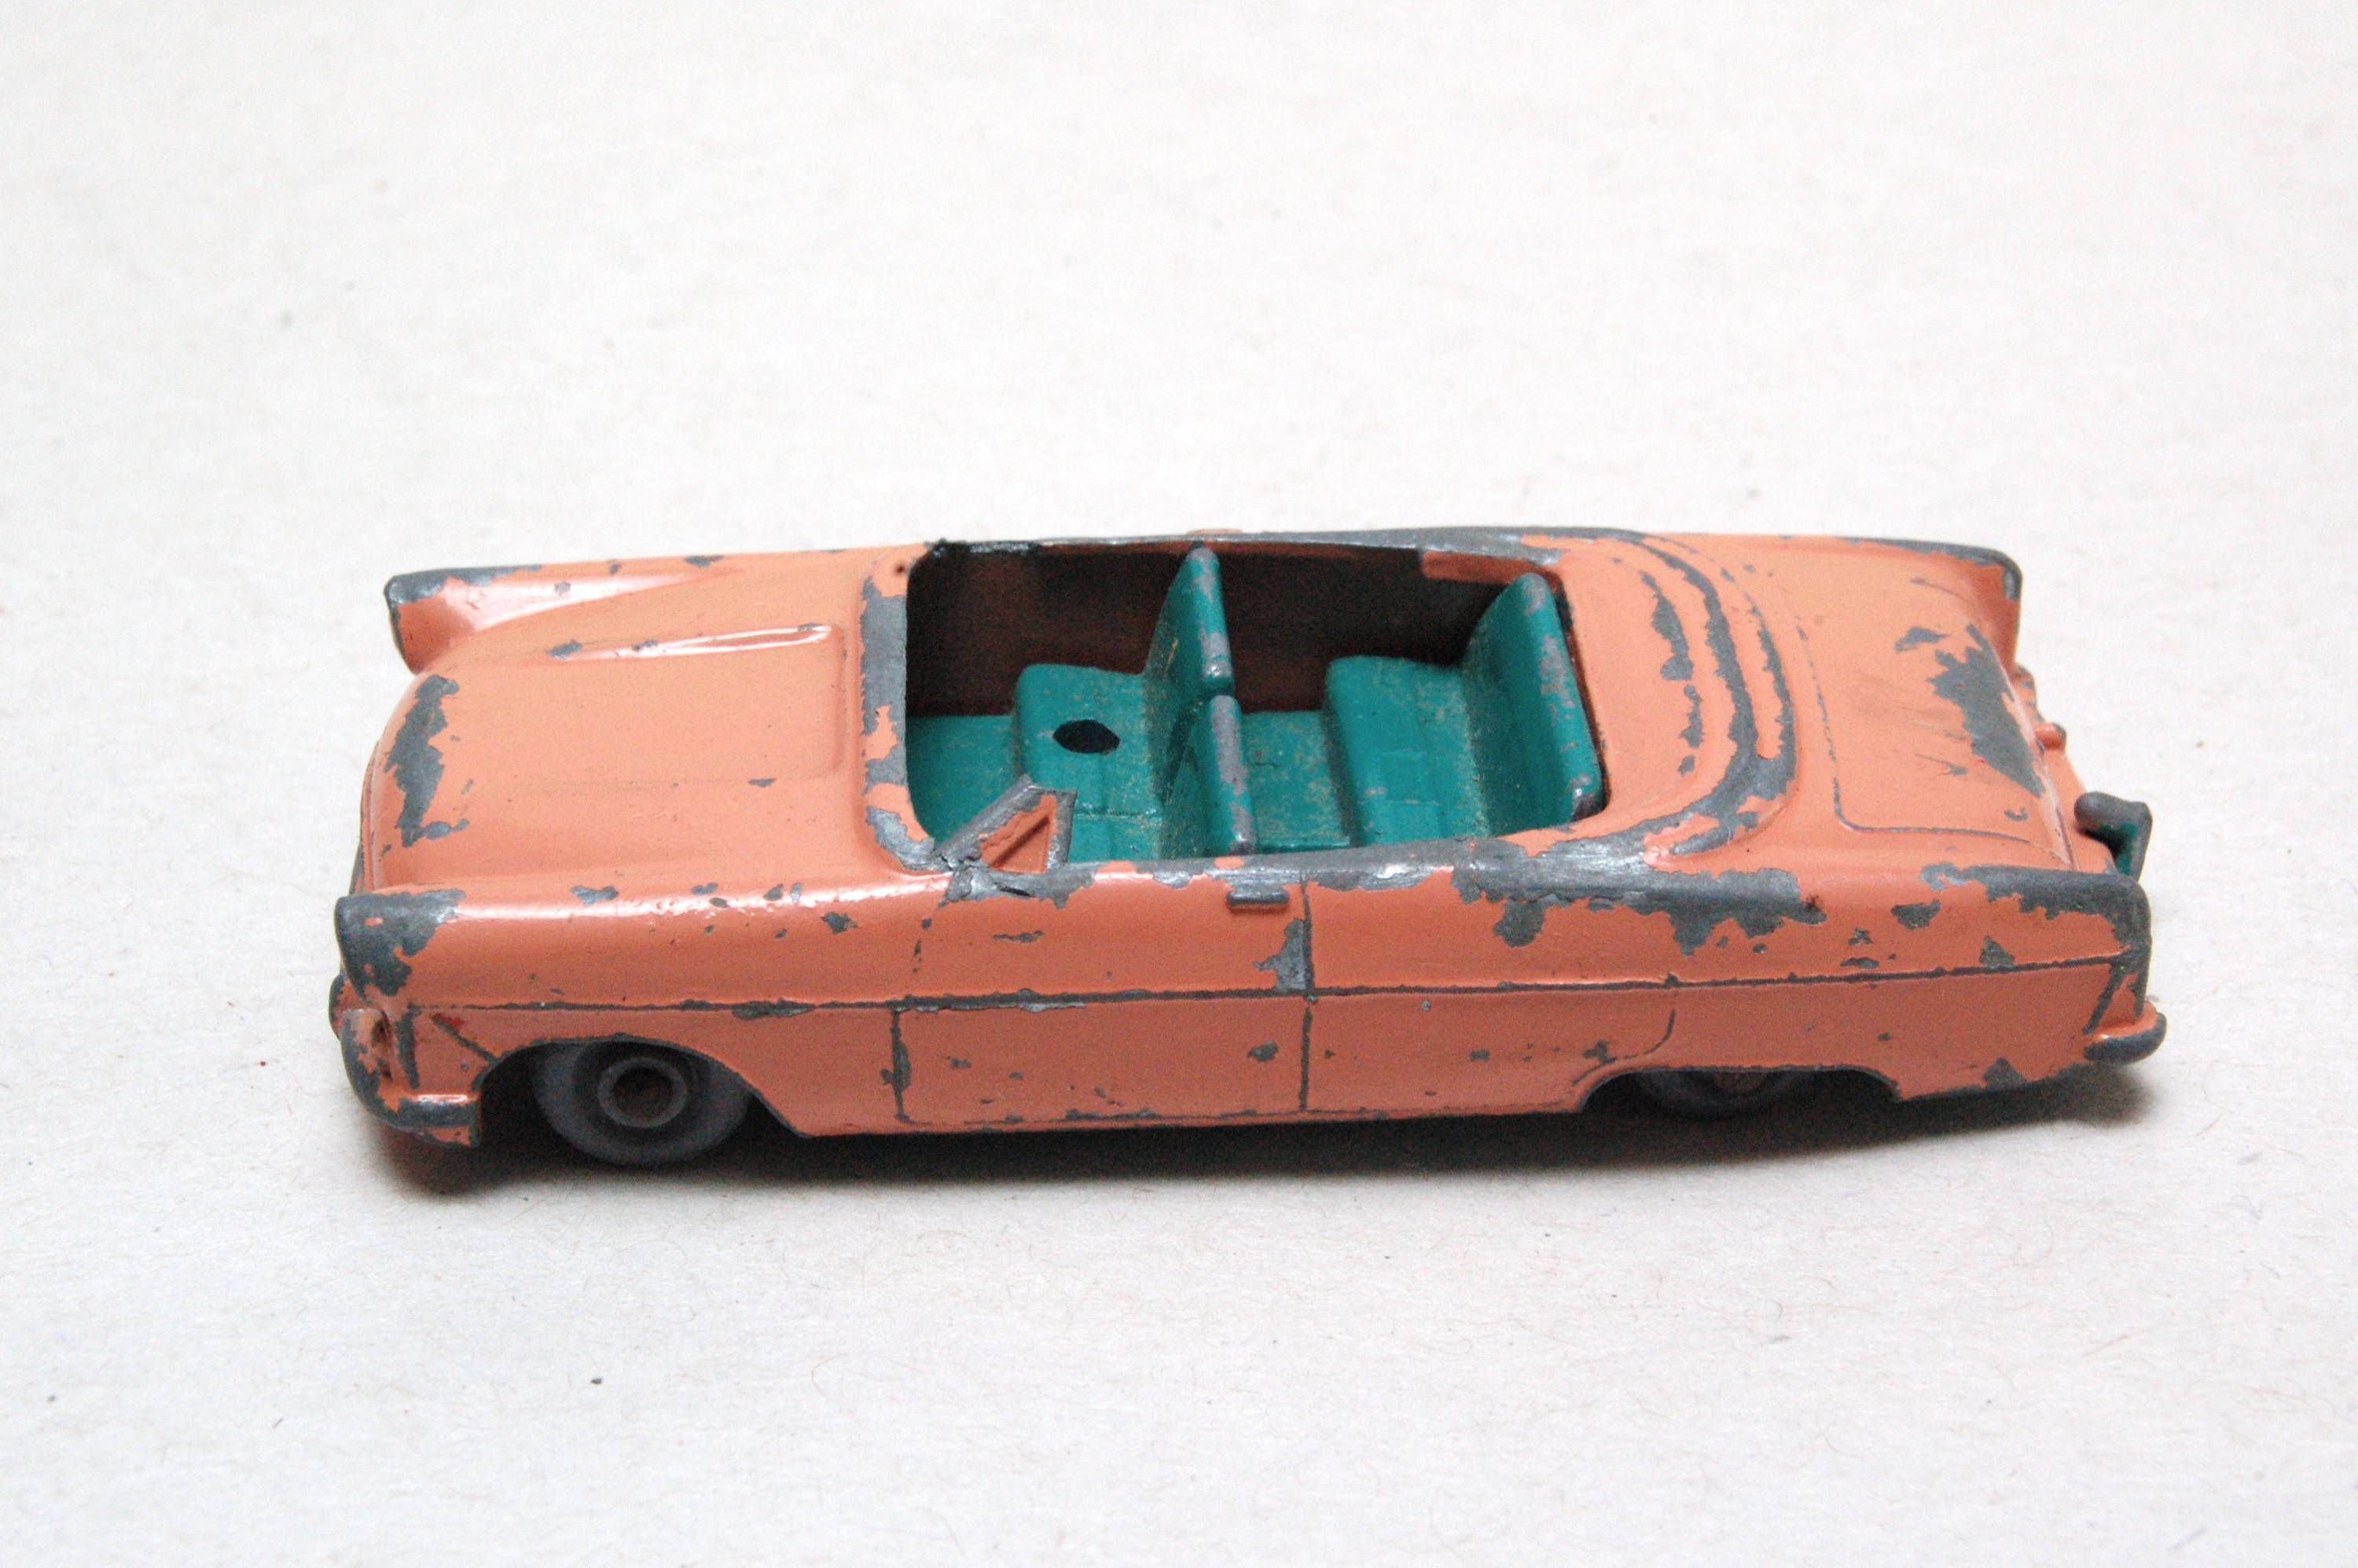 Matchbox Lesney No 39 Ford Zodiac Convertible Broken 1950 S Made In England Vintage Die Cast Metal Toy Car By Rememberwhen Toy Car Metal Toys Matchbox Cars